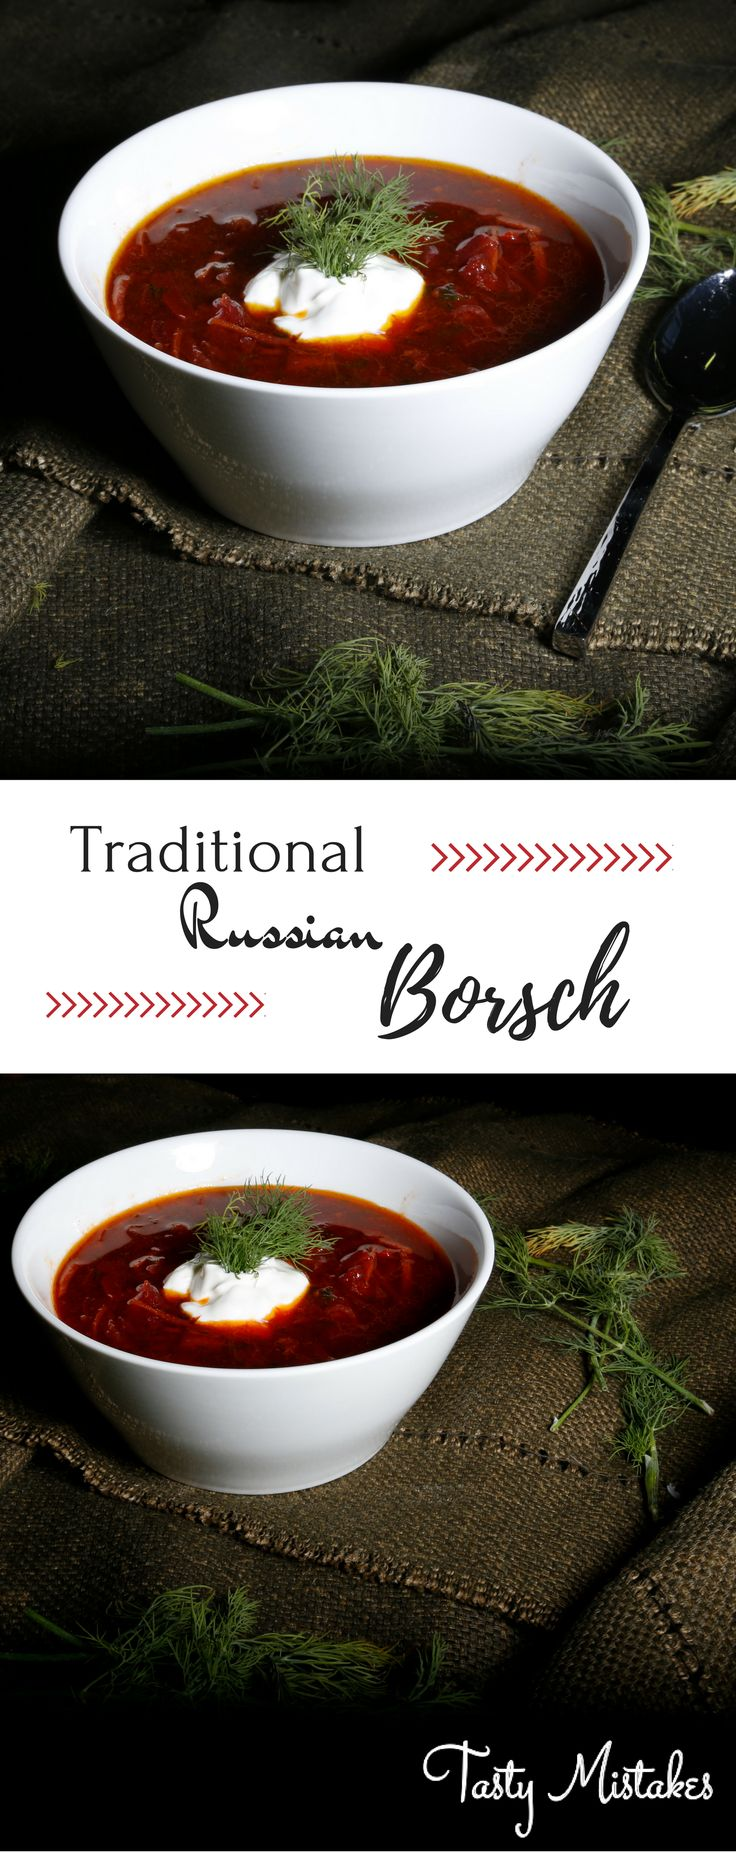 Authentic Russian Borsch recipe. After living in Russia for 7 years, this is my take on an amazing and traditional soup :)